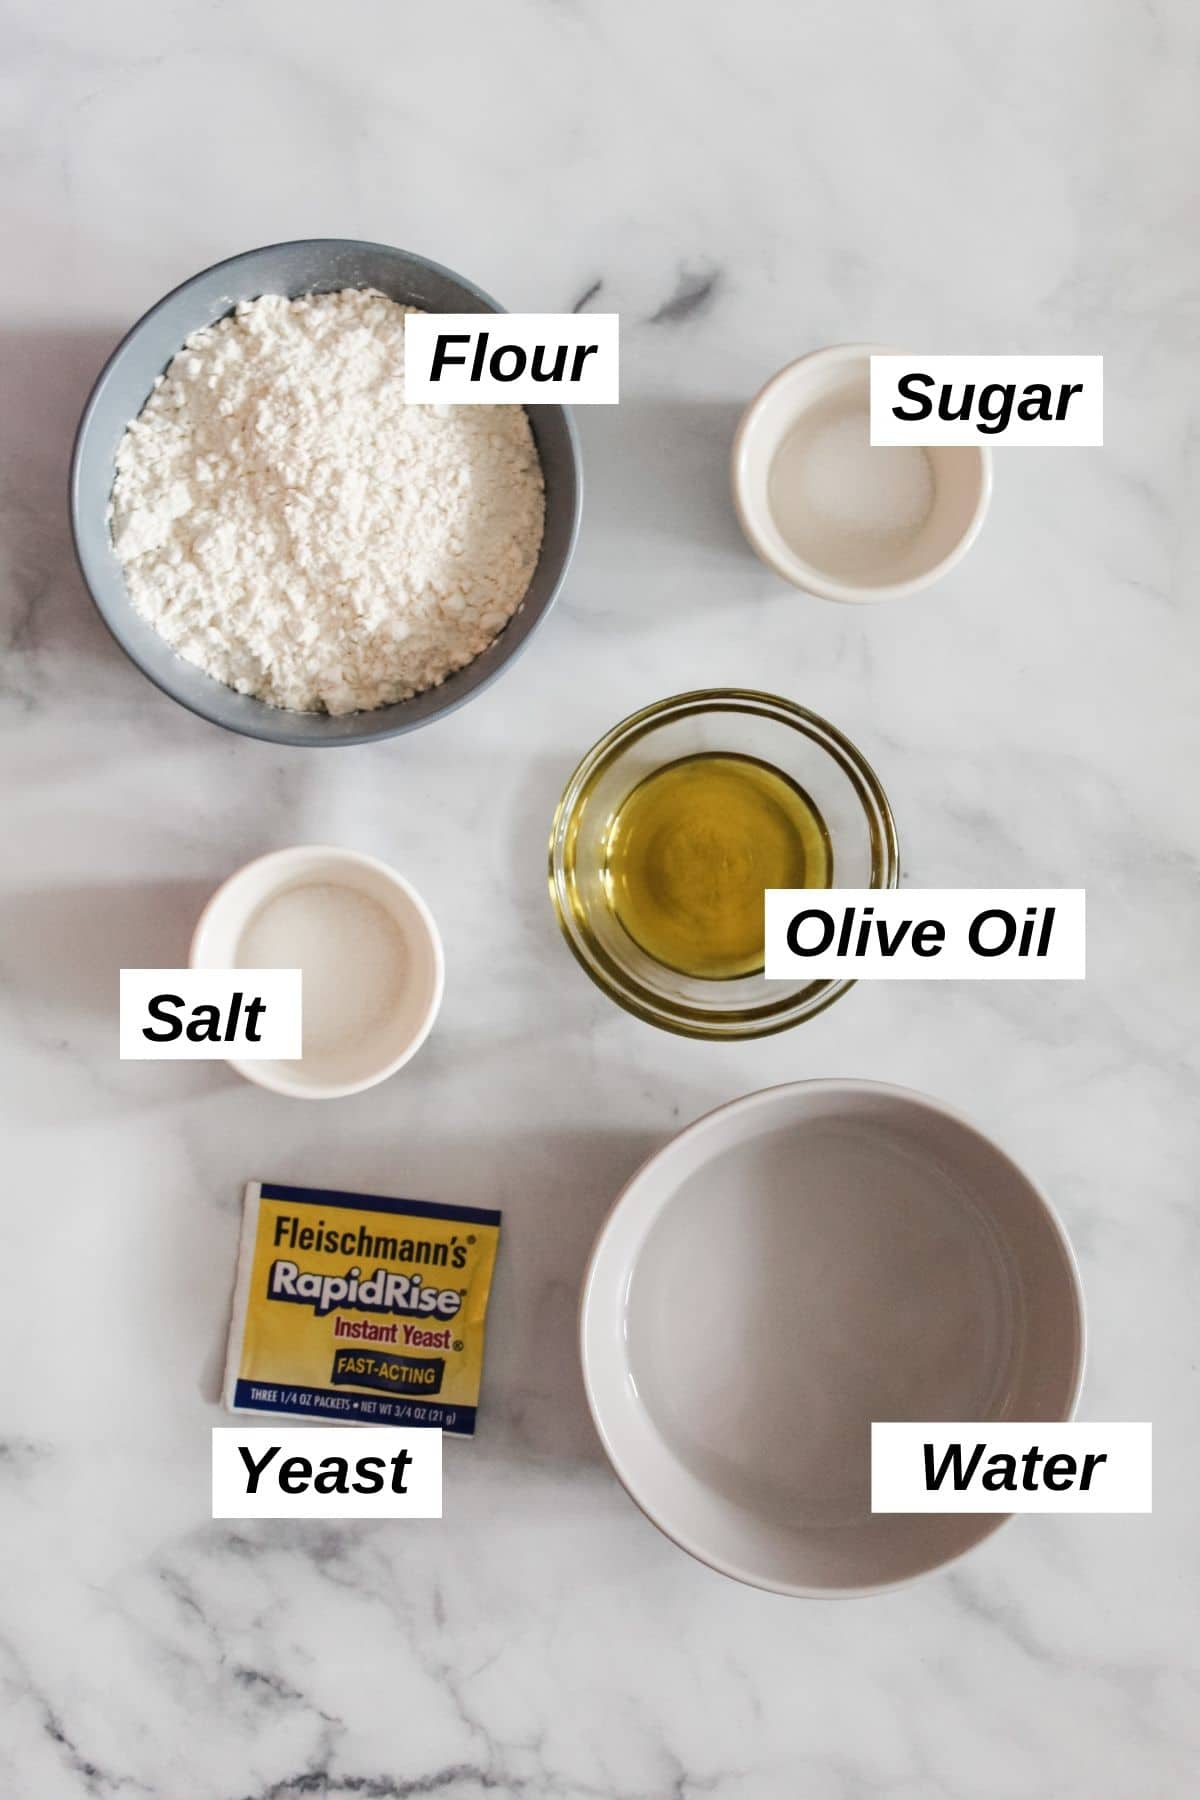 Individual ingredients for vegan pizza dough in small bowls including yeast, water, flour, sugar, salt, and olive oil